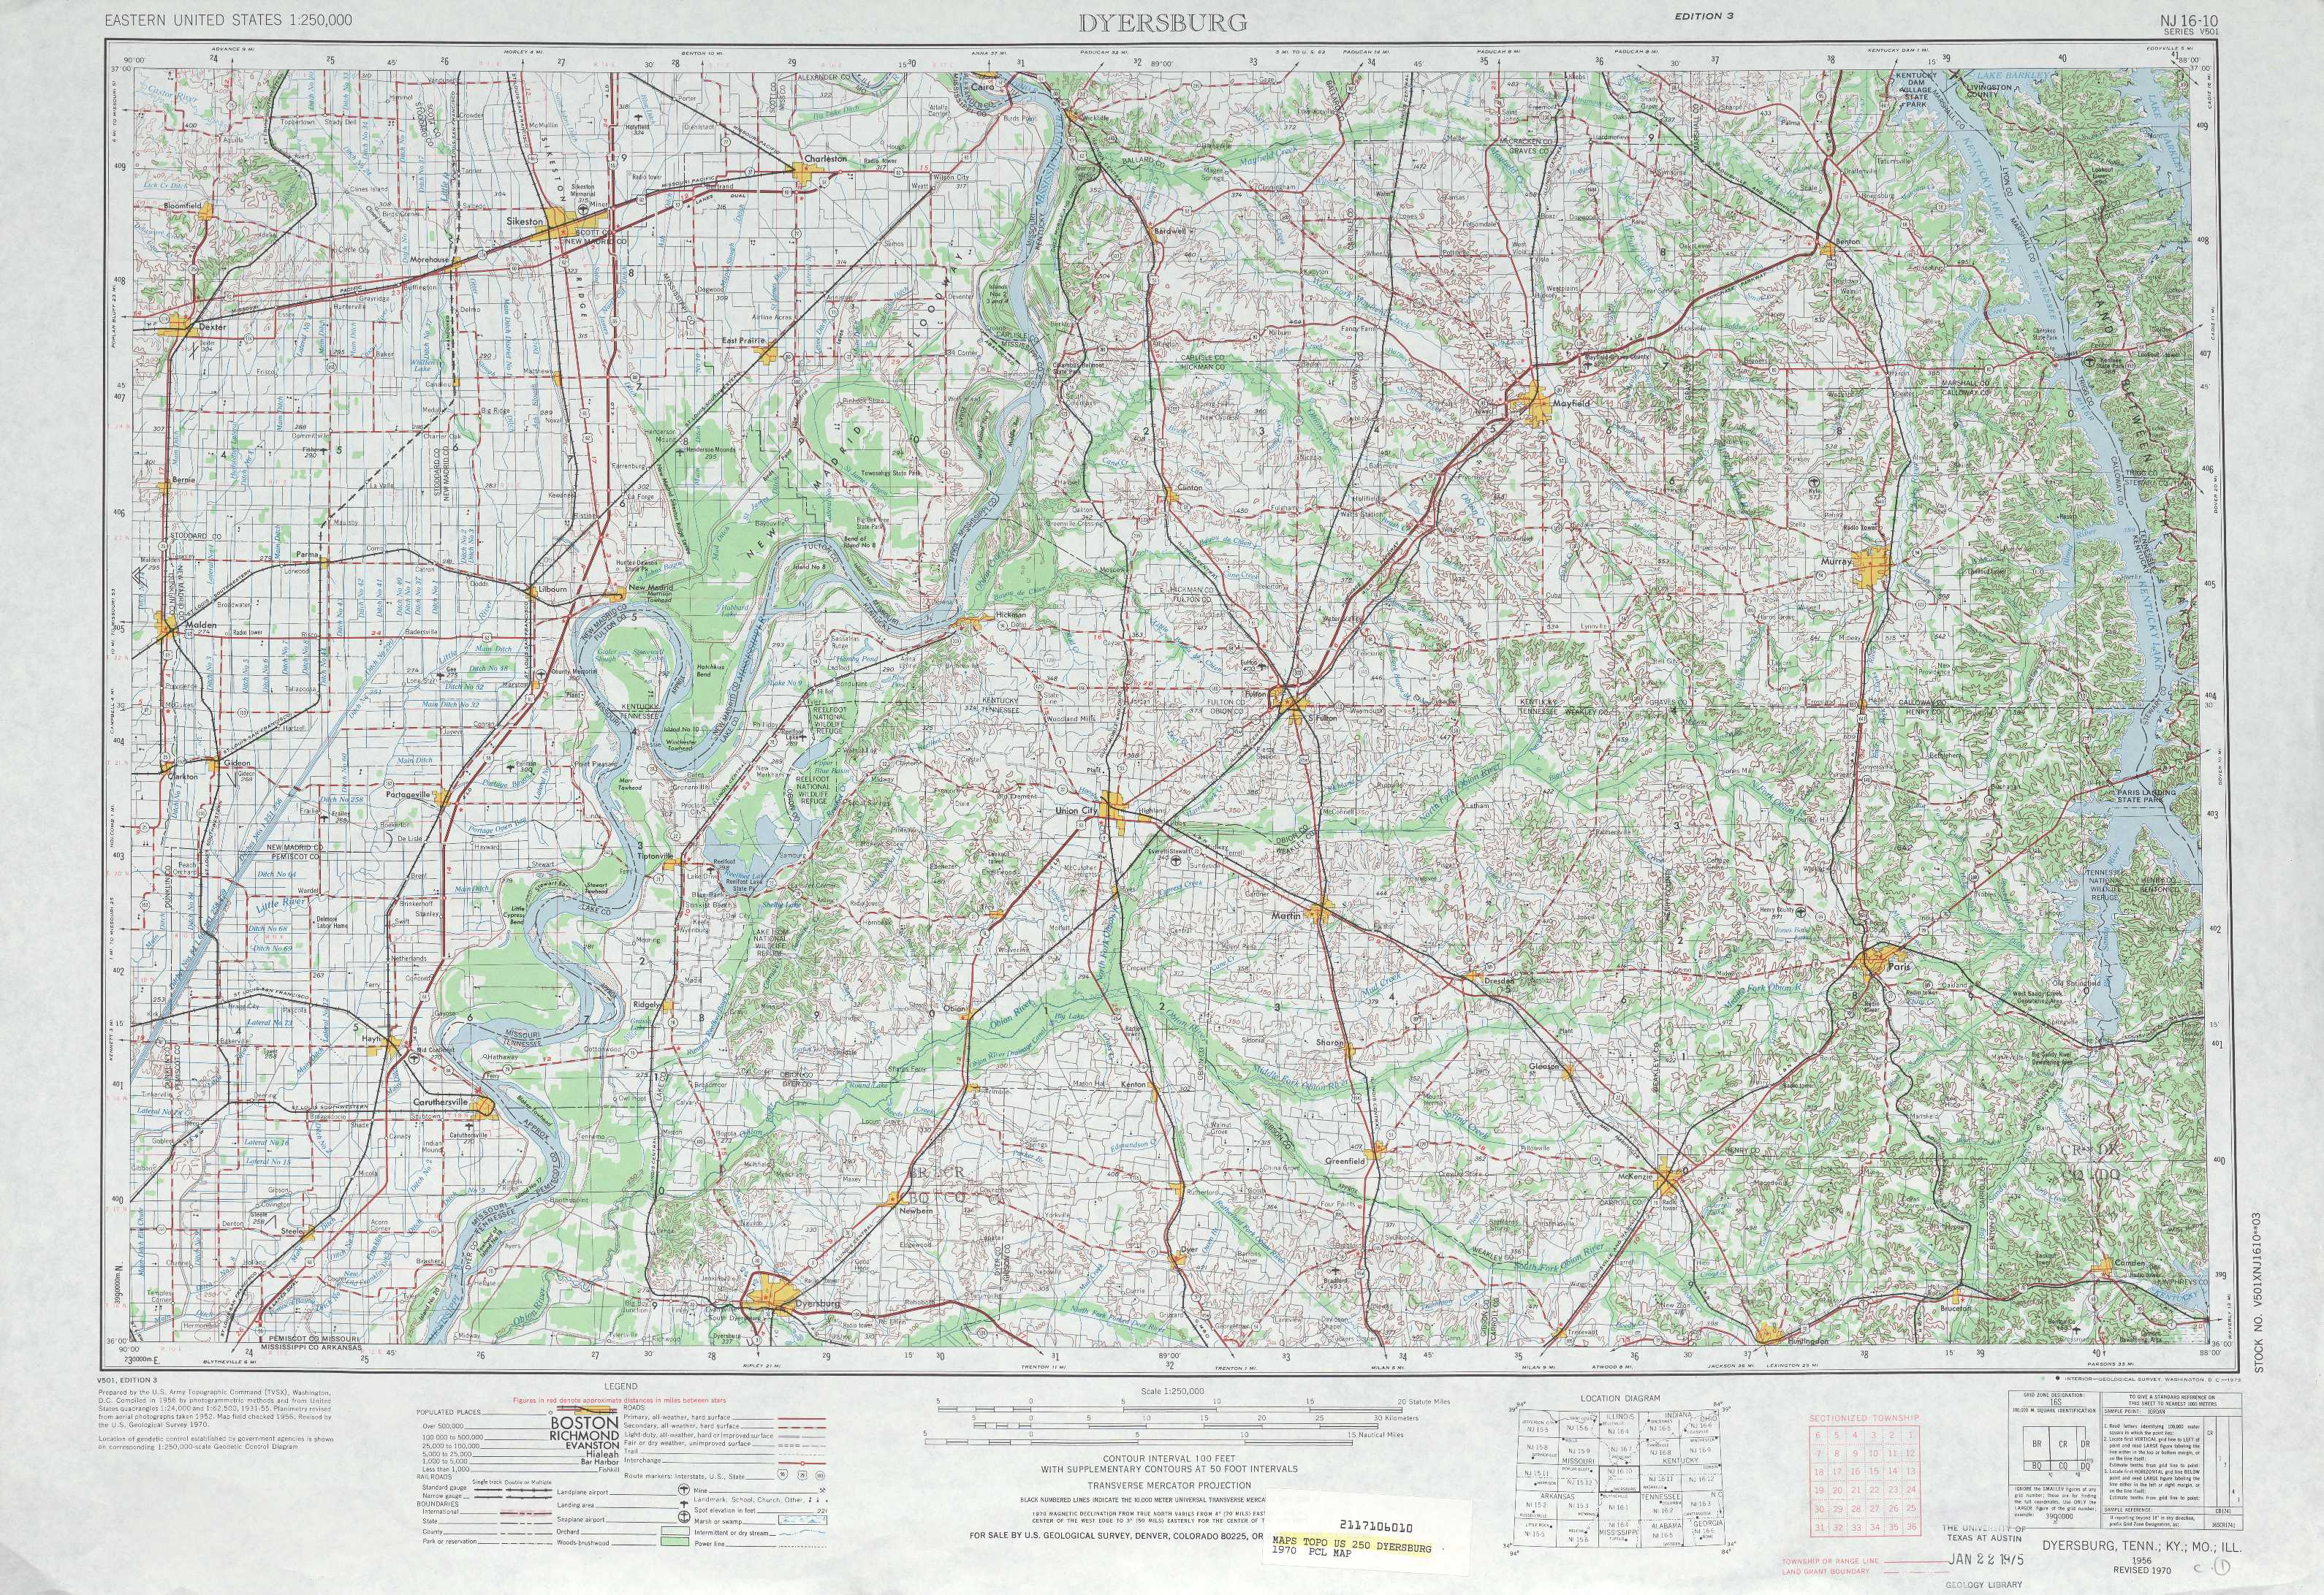 Dyersburg Topographic Maps Tn Mo Ky Usgs Topo Quad 36088a1 At 1 250 000 Scale